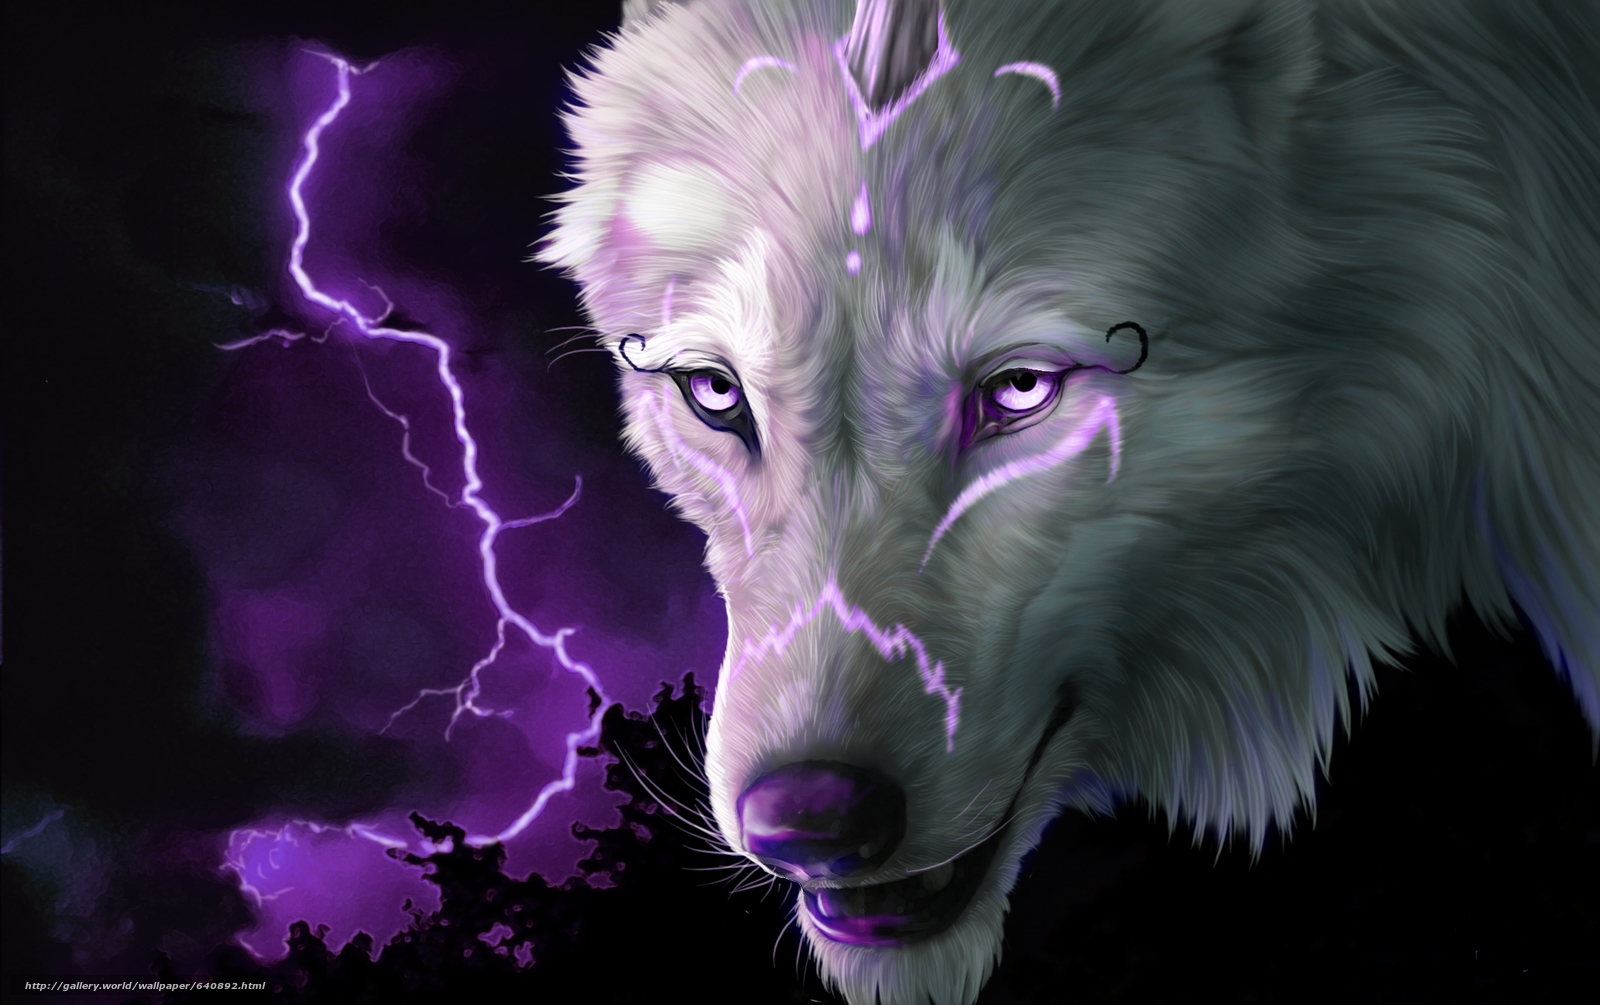 Download Wallpaper Wolf View Lightning 3d Free Desktop In The Resolution 2064x1297 Picture No640892